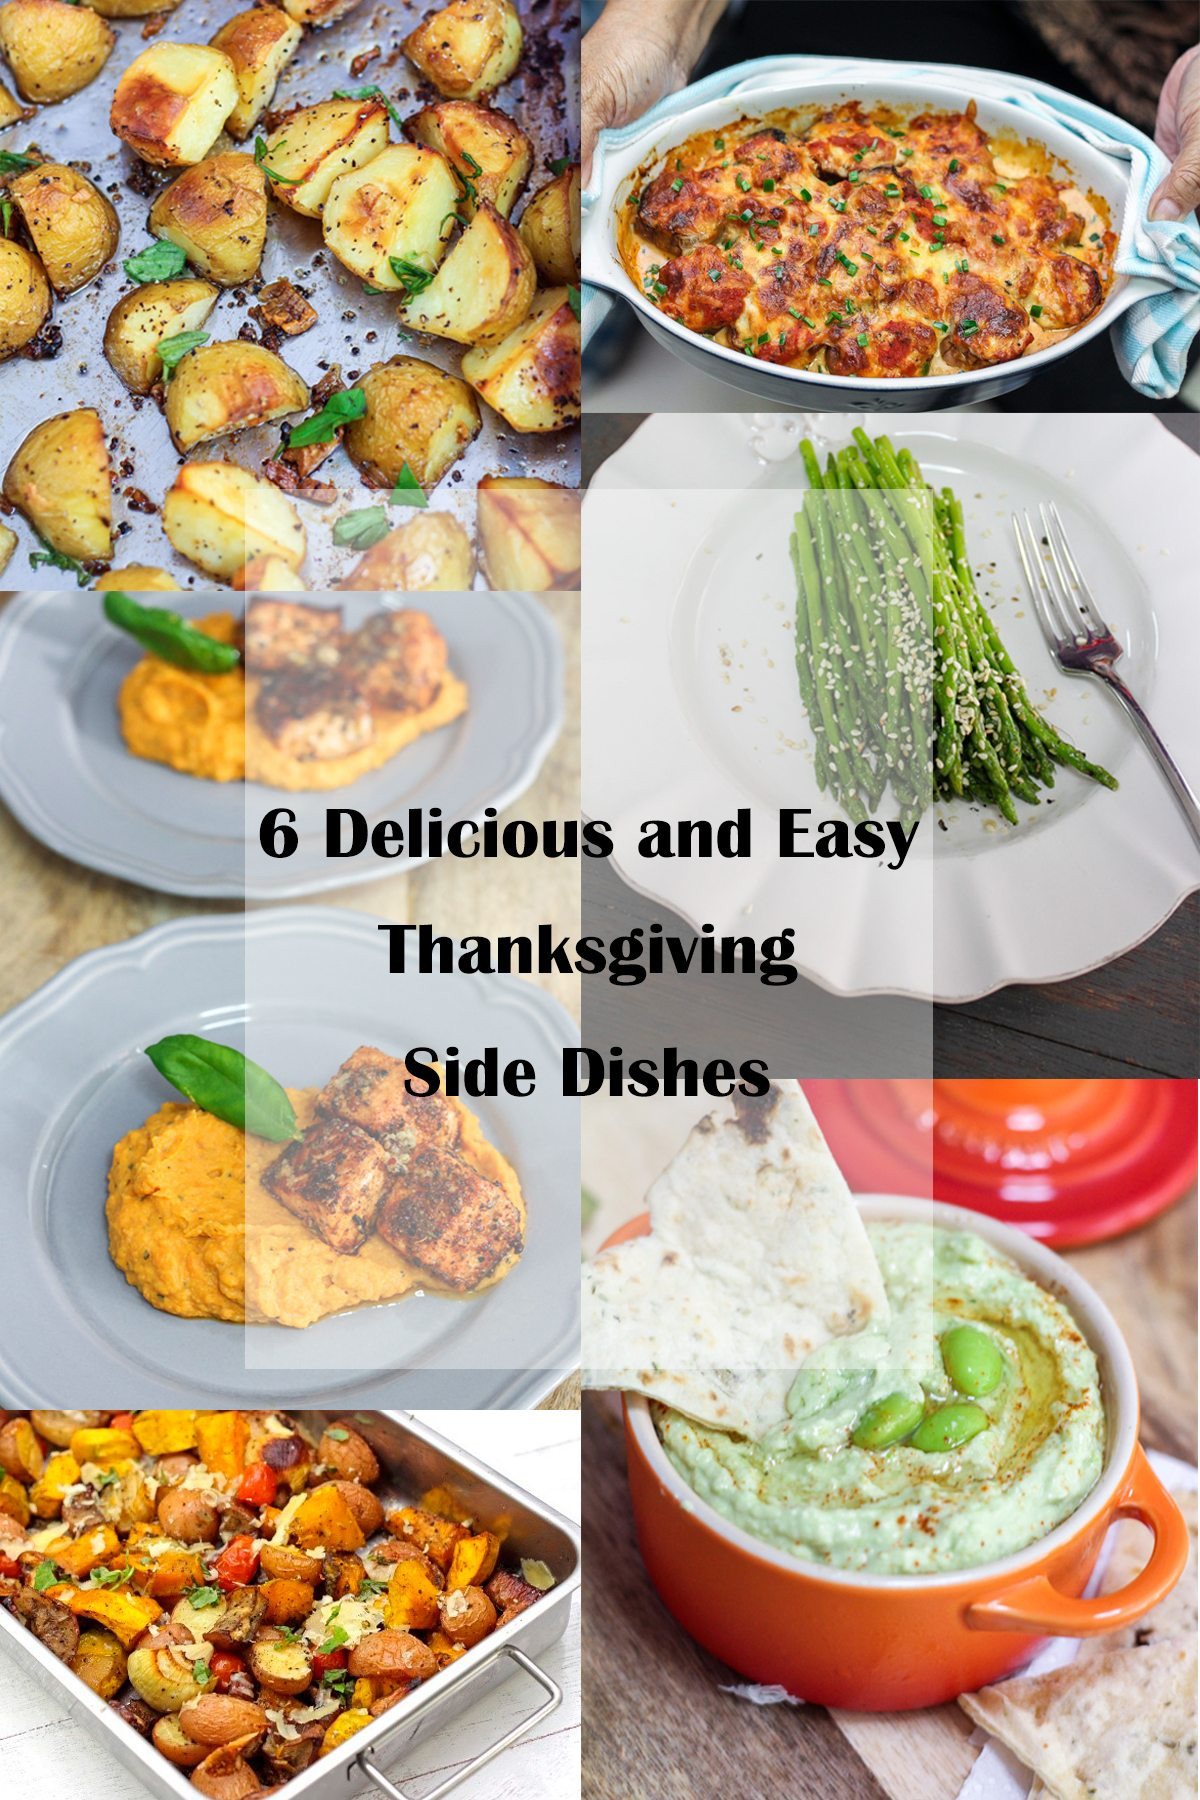 Thanksgiving Side Dishes Easy  6 Delicious and Easy Thanksgiving Side Dishes